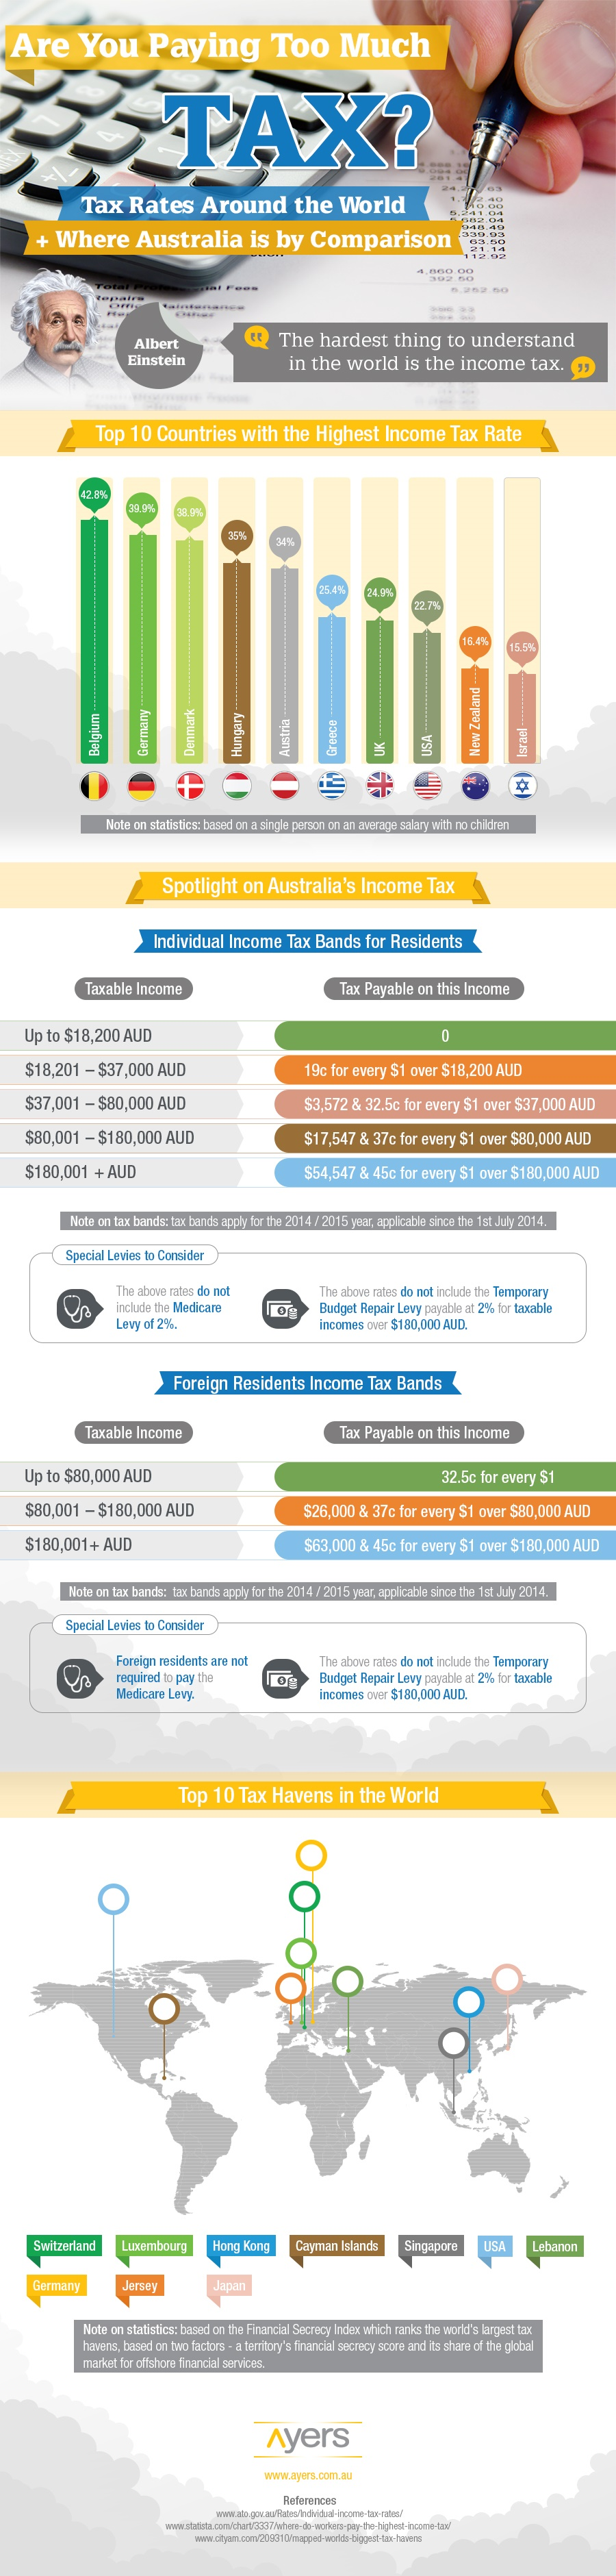 Aussie taxes infographic